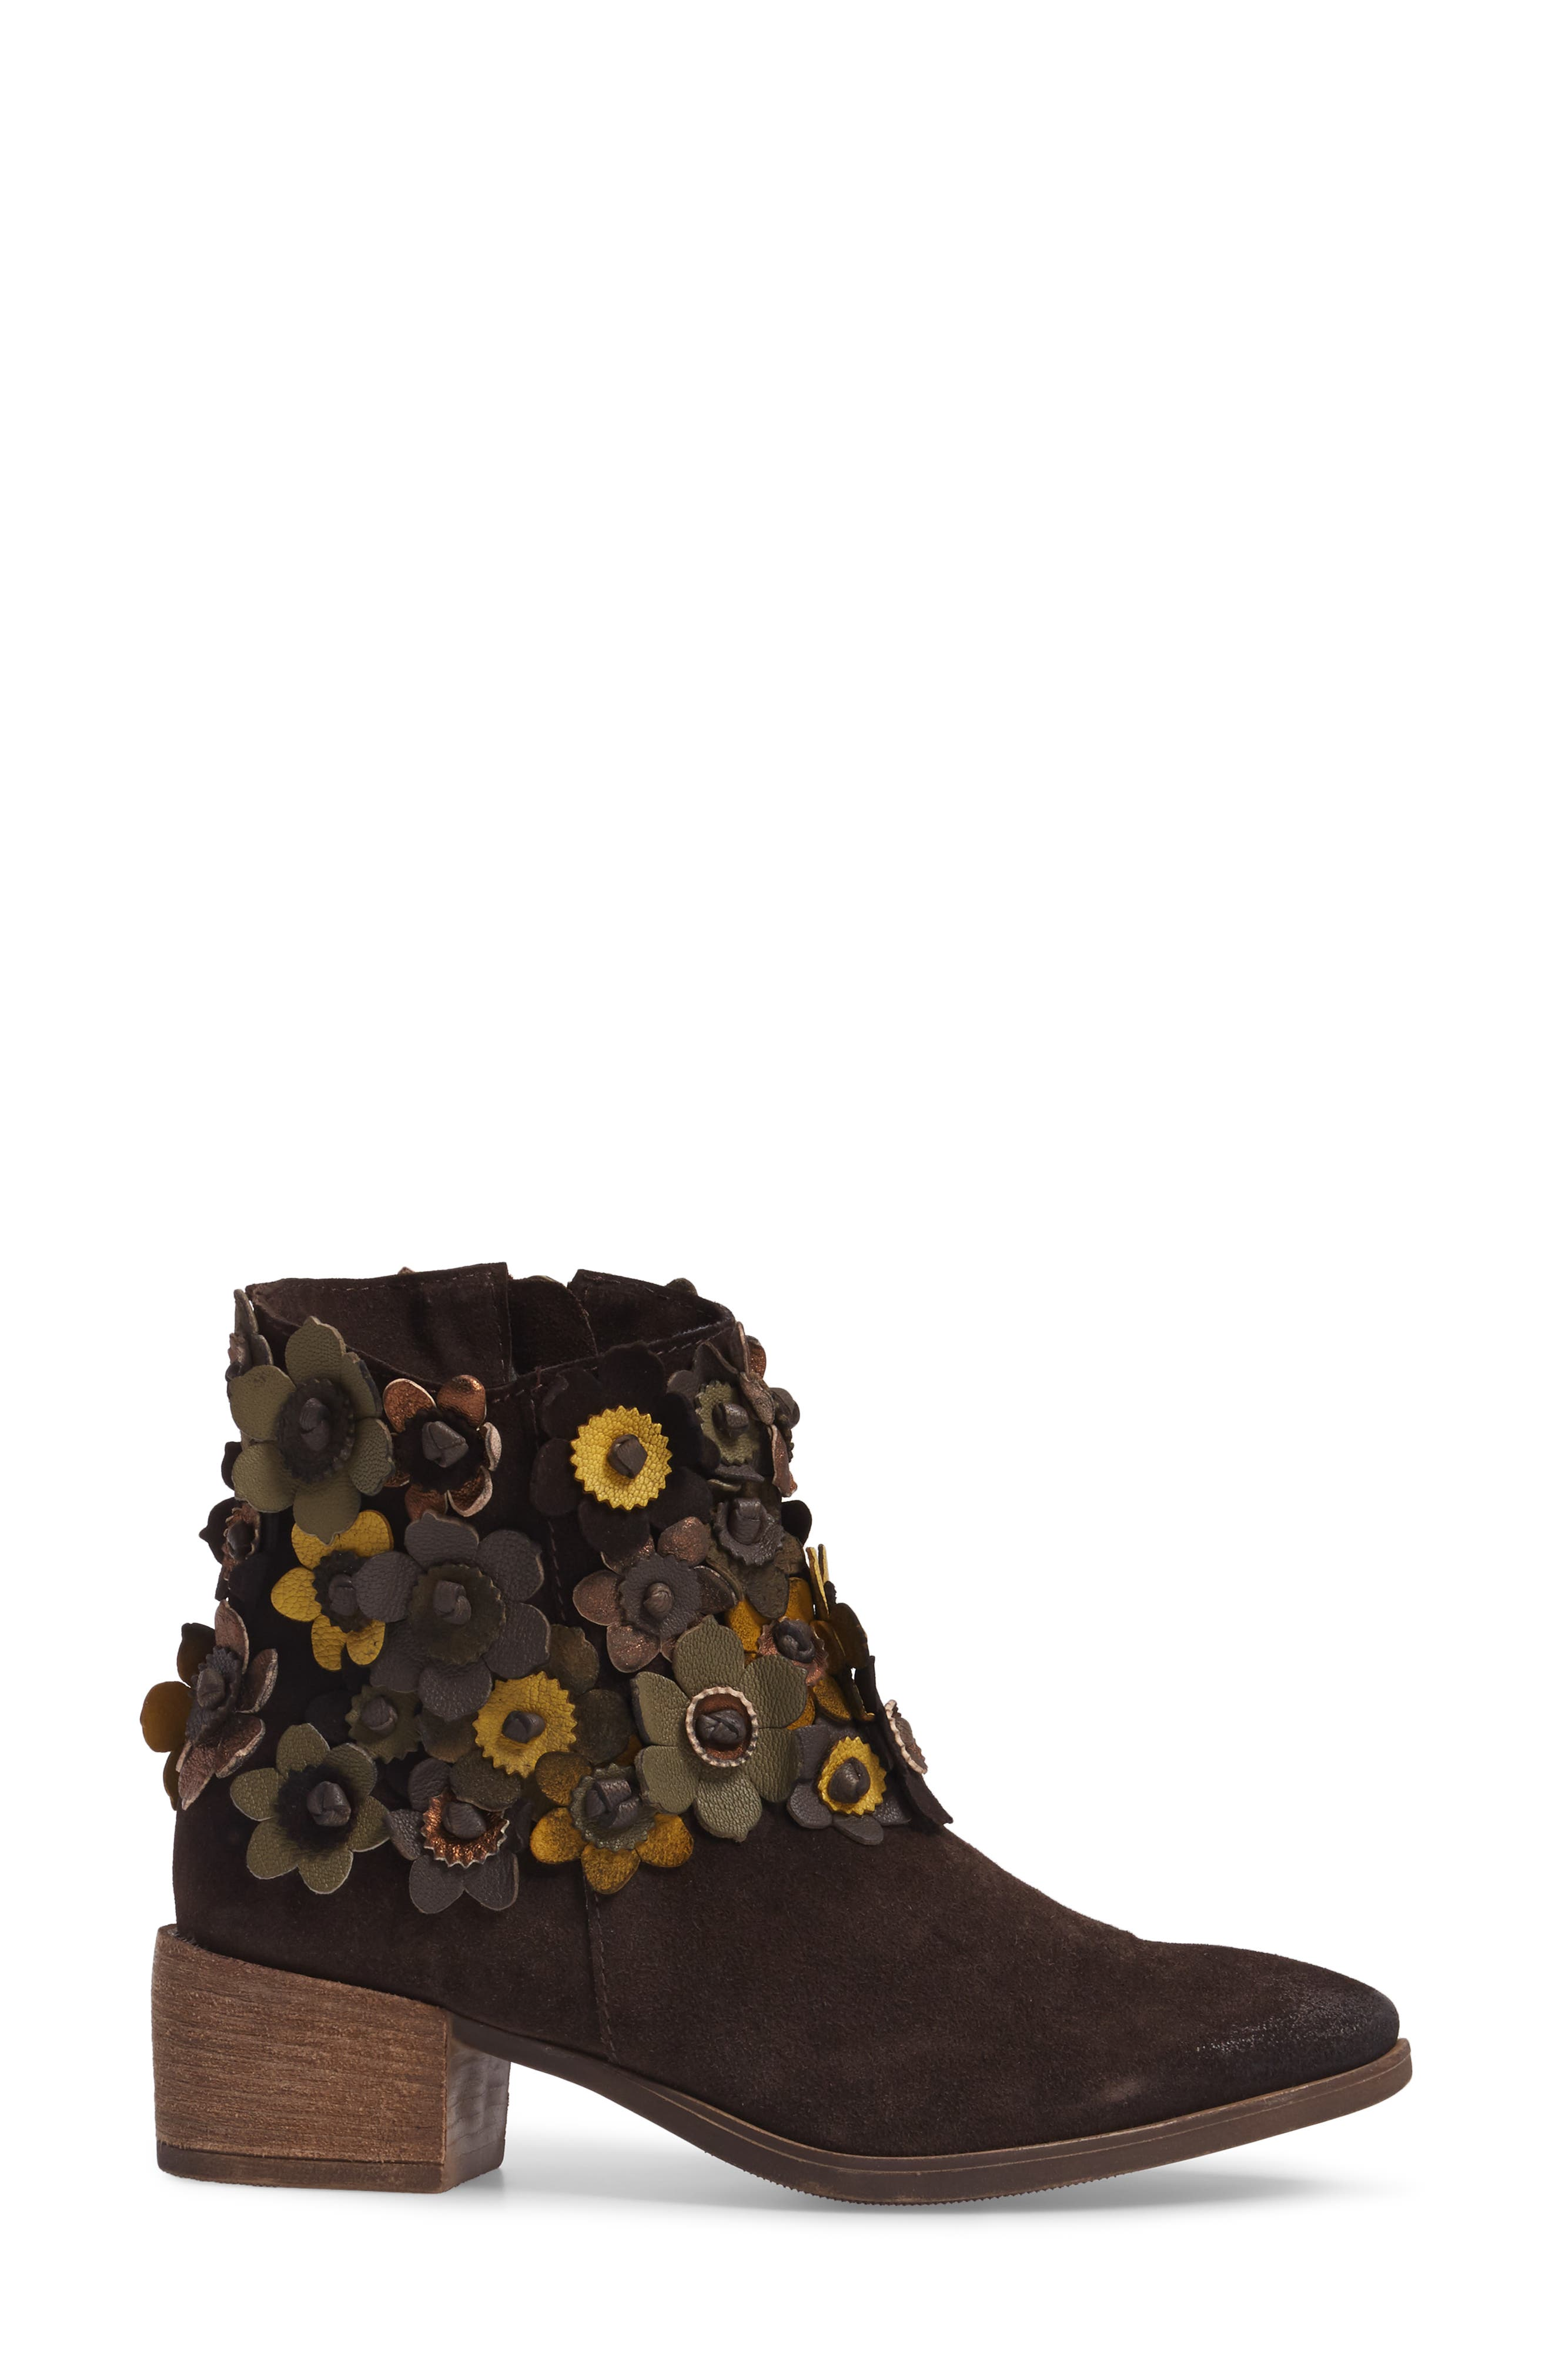 Sunflower Embellished Bootie,                             Alternate thumbnail 3, color,                             BROWN SUEDE